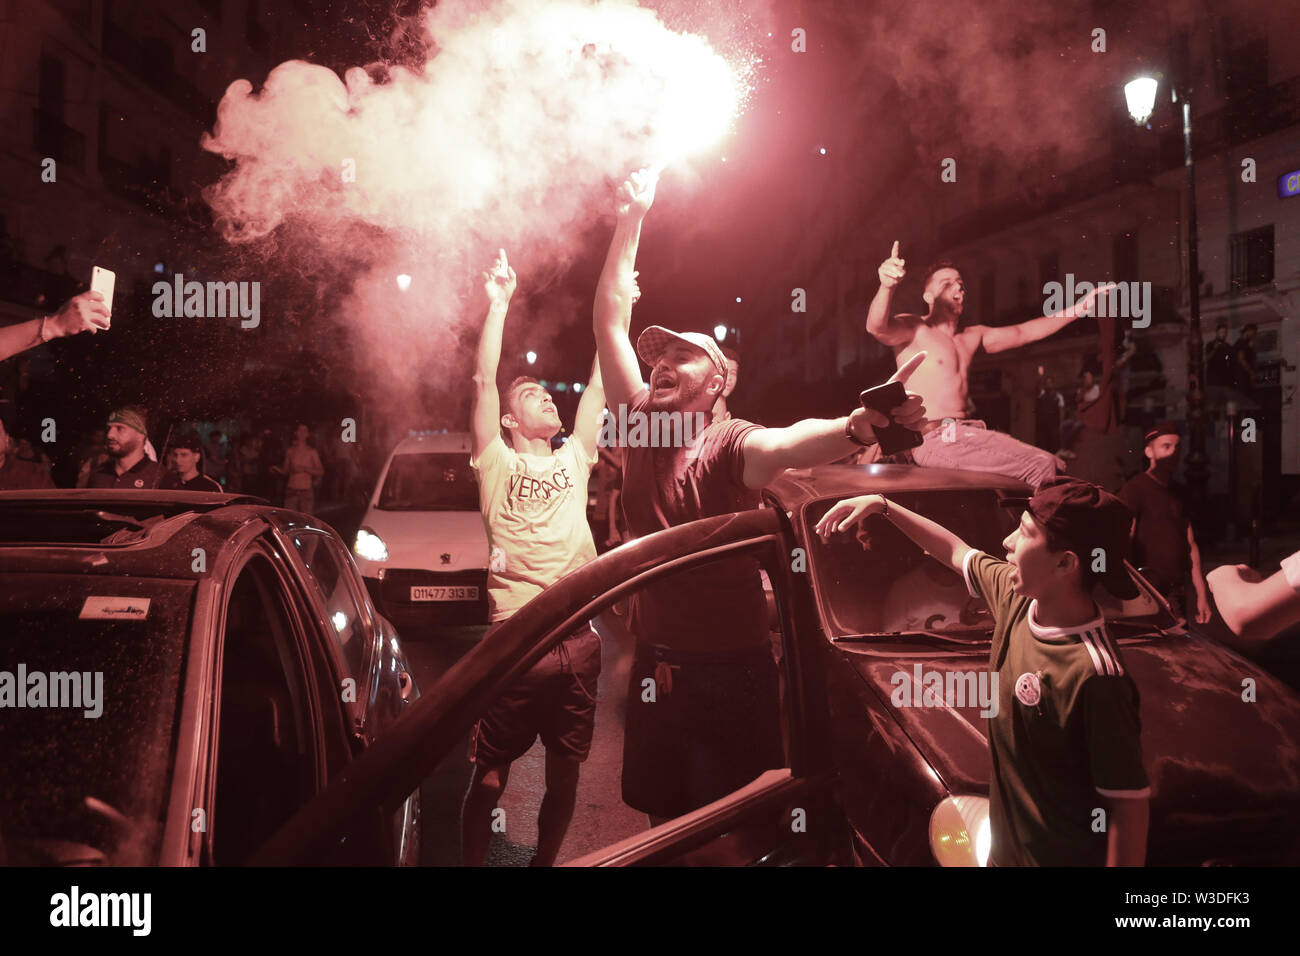 Algiers, Algeria. 14th July, 2019. Algeria national soccer team supporters celebrate at the Grande Poste D'Alger after Algeria reached the final of the 2019 Africa Cup of Nations (CAN) following their victory during the semi-final against Nigeria. Credit: Farouk Batiche/dpa/Alamy Live News - Stock Image